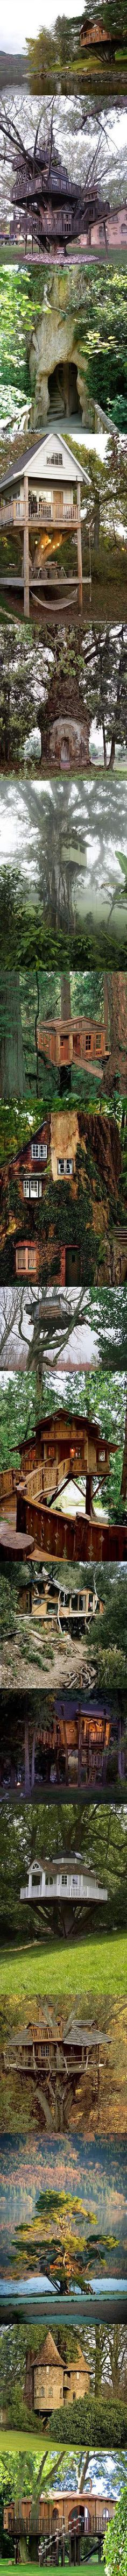 I would live in any of these! As long as there was a toilet. And a shower.  And electricity.  And possibly WiFi.